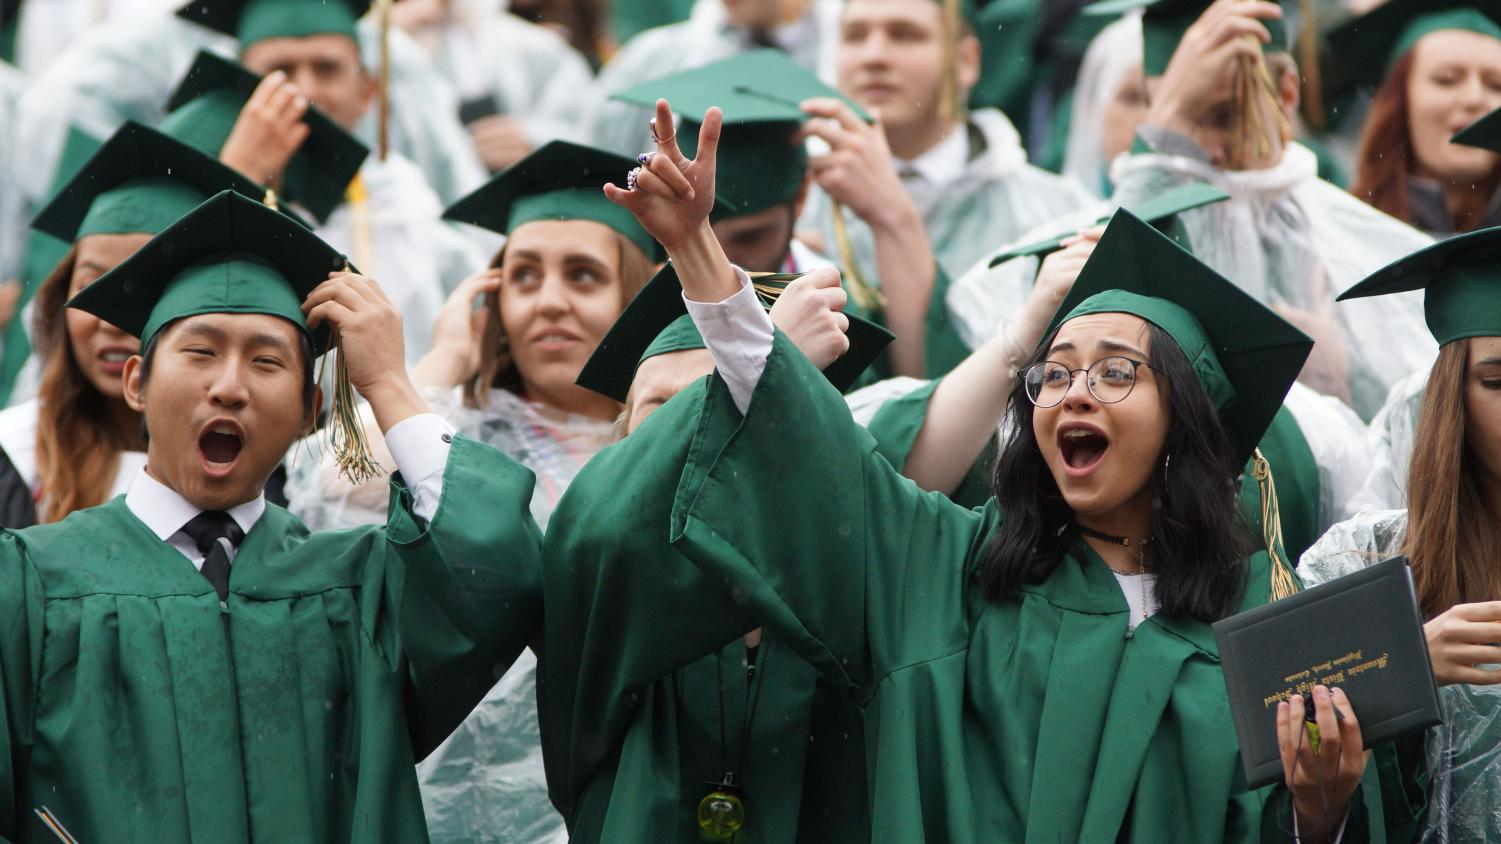 PHOTO GALLERY: Class of 2019 Graduation